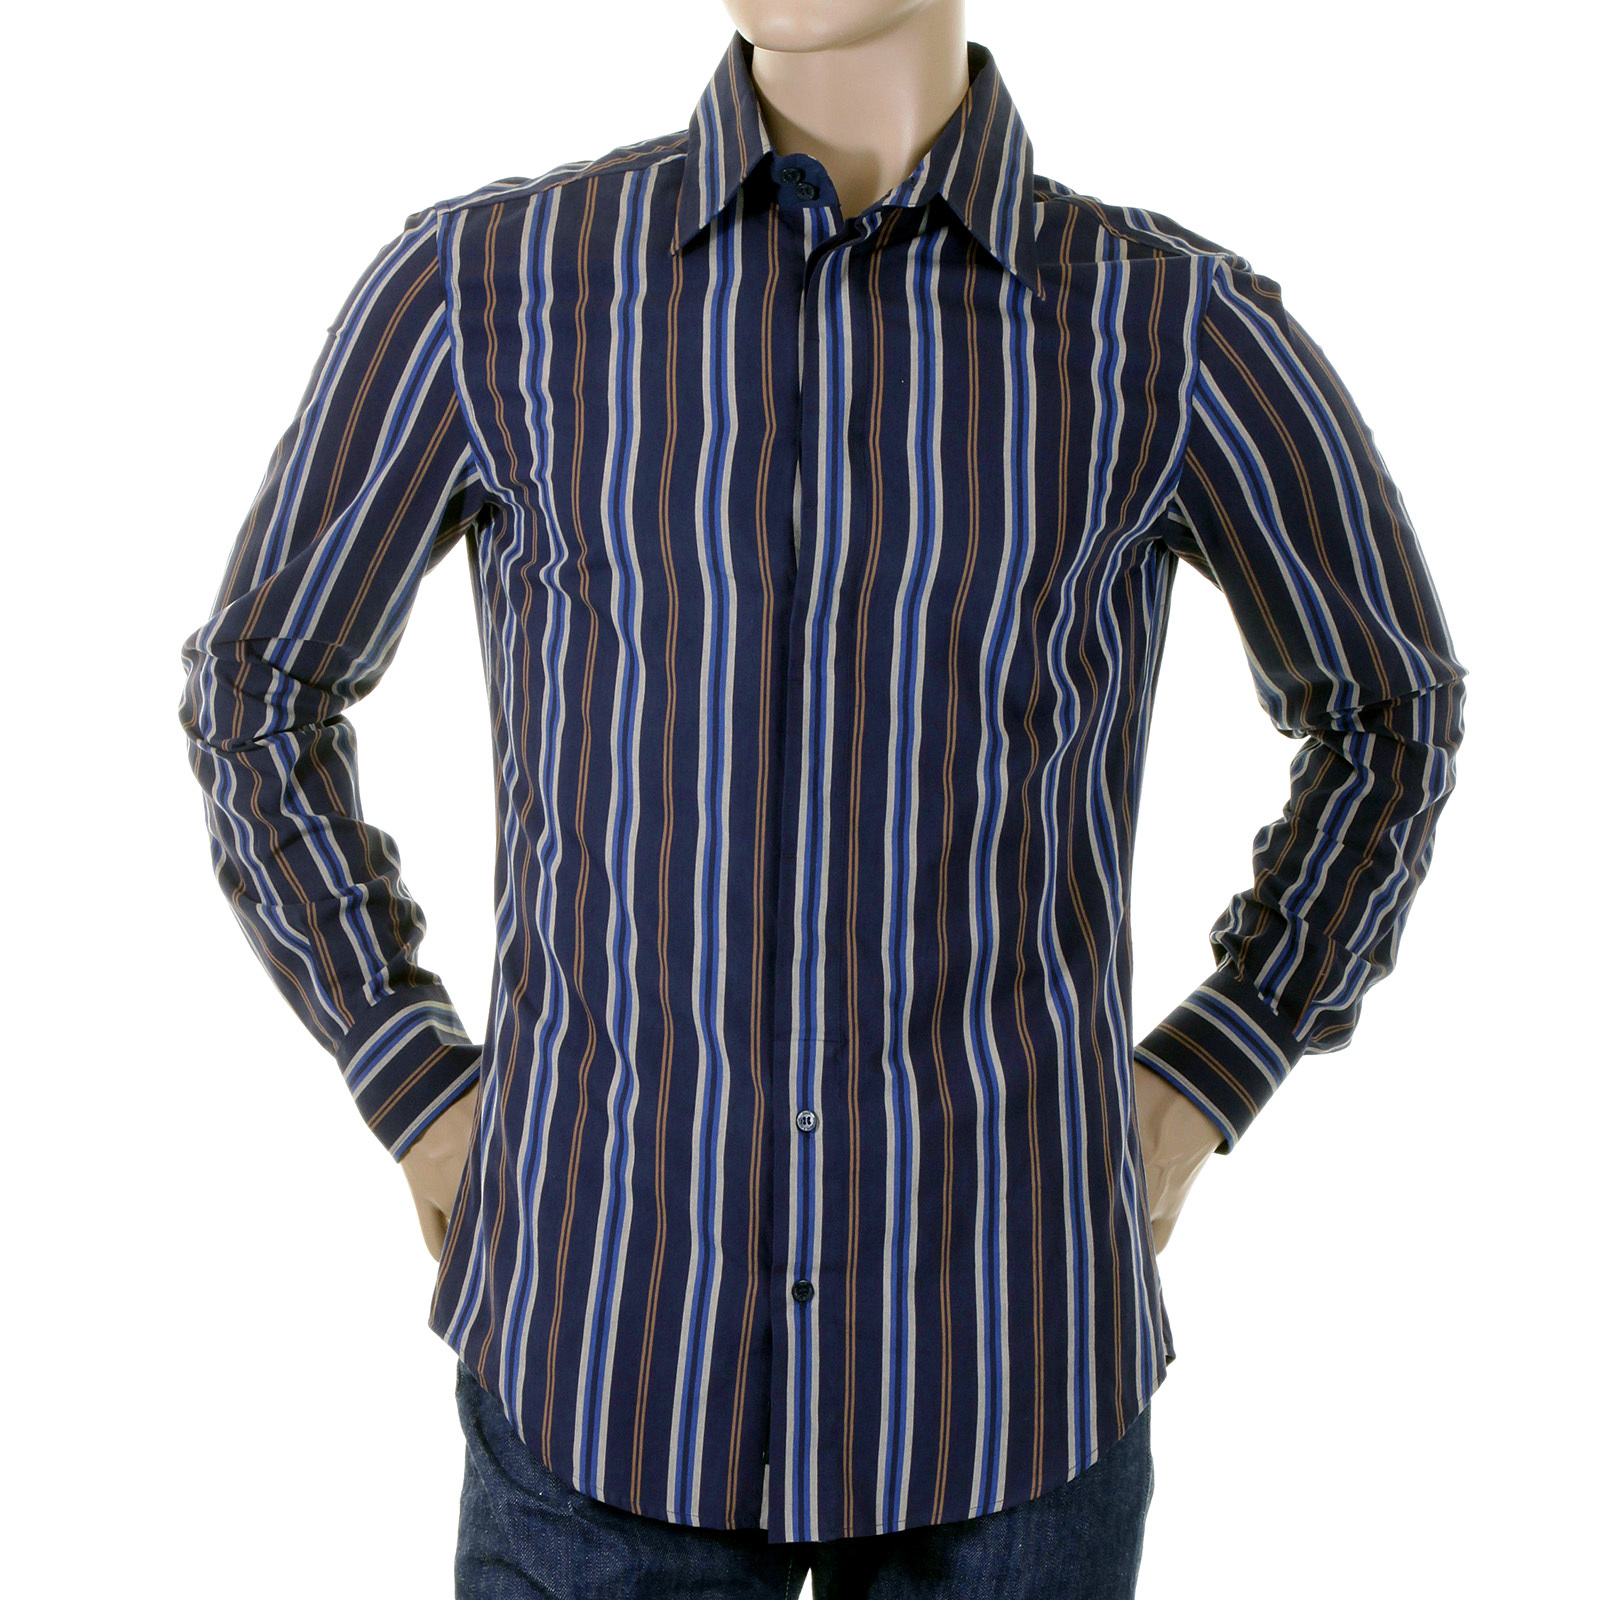 Striped Casual Shirts. Refresh your wardrobe with the colorful collection of finely appointed men's striped casual shirts from Paul Fredrick. Our striped shirts for men features handsome striped designs in cool, contemporary colors and prints for a polished statement.